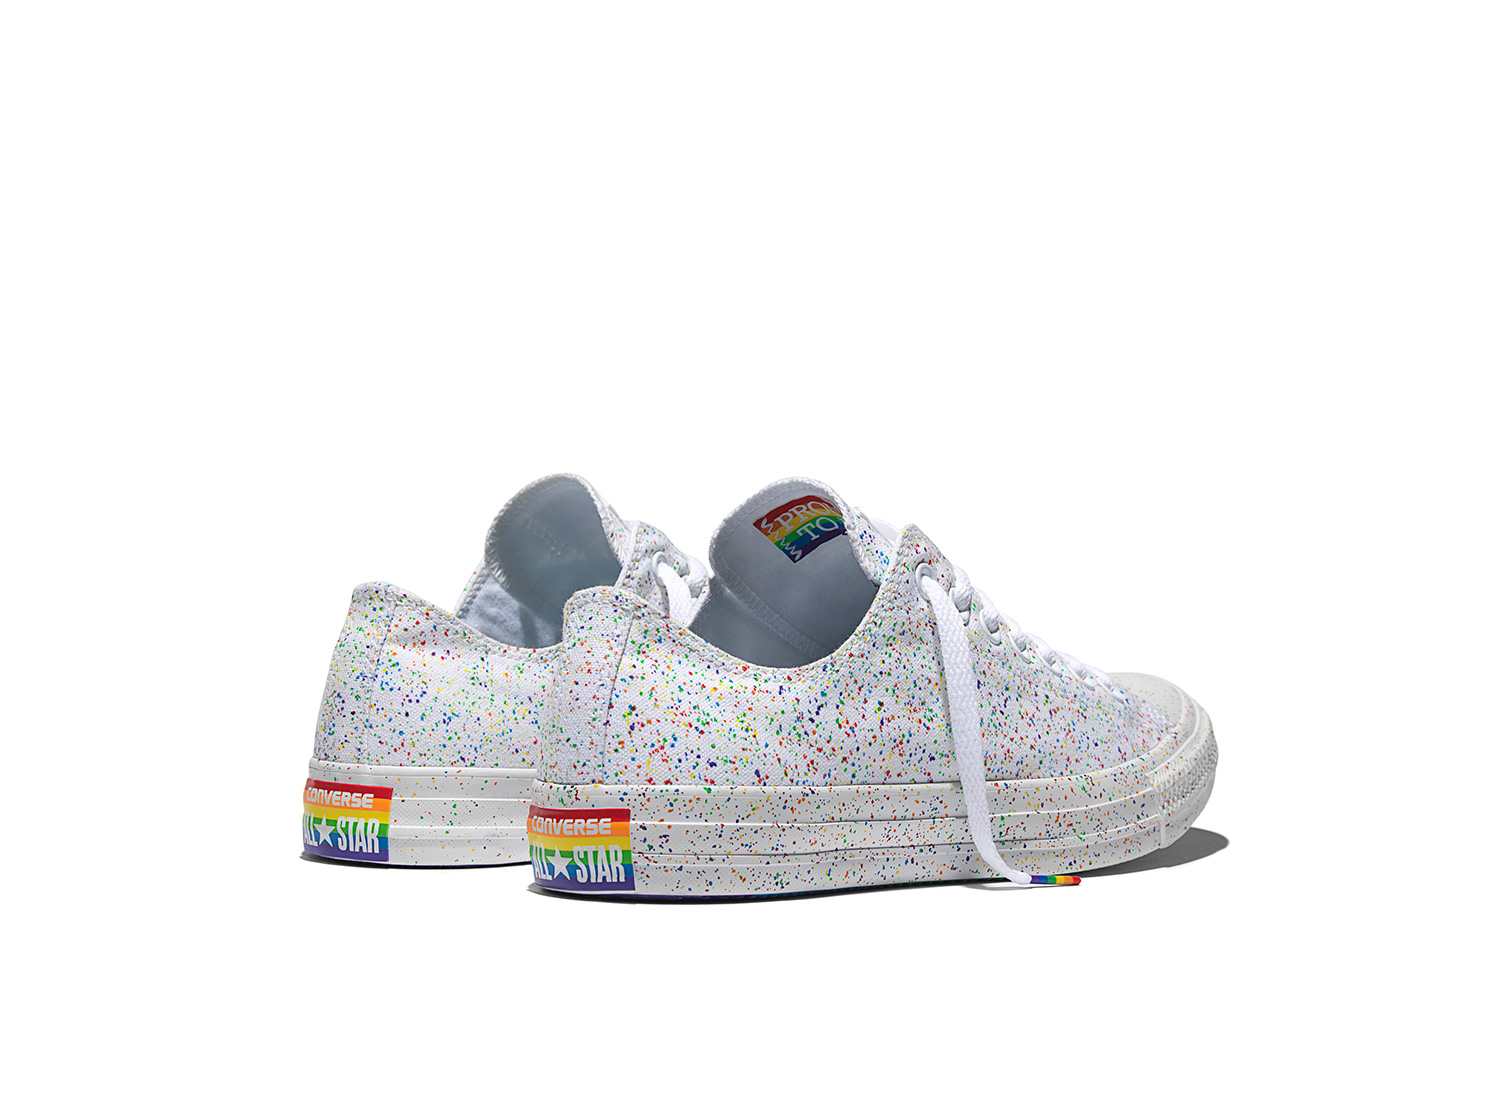 a2dd5c75f85d 2016 Converse Pride Collection with New Rainbow Design Chuck Taylor Sneakers